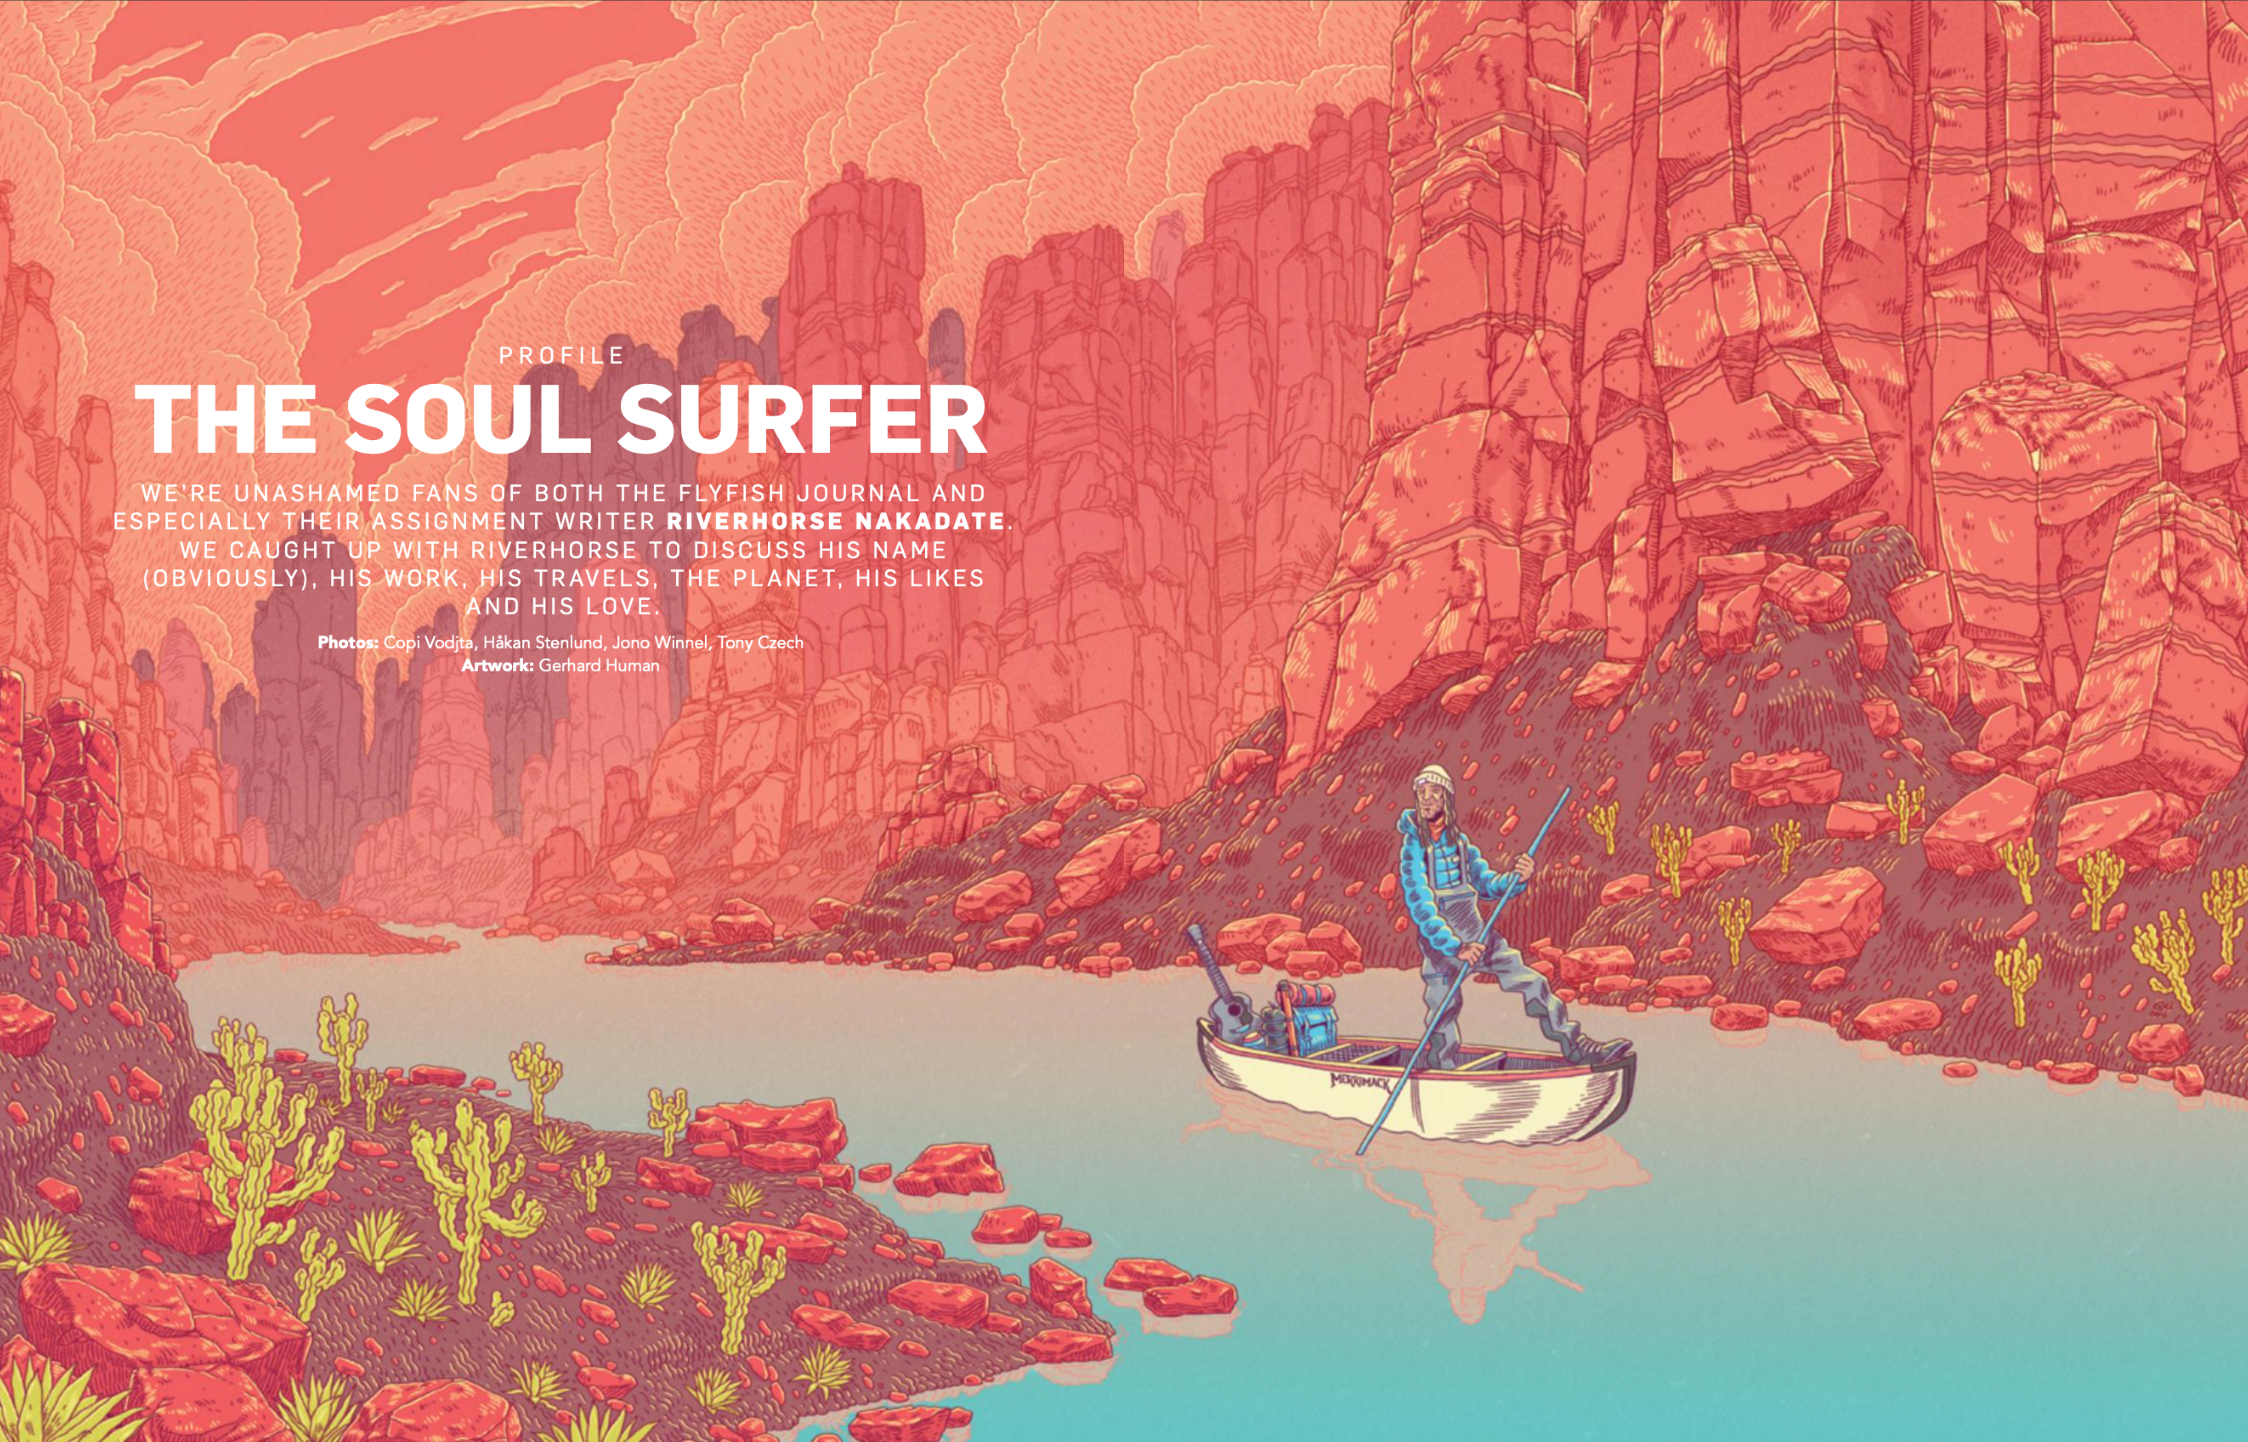 thesoulsurfer